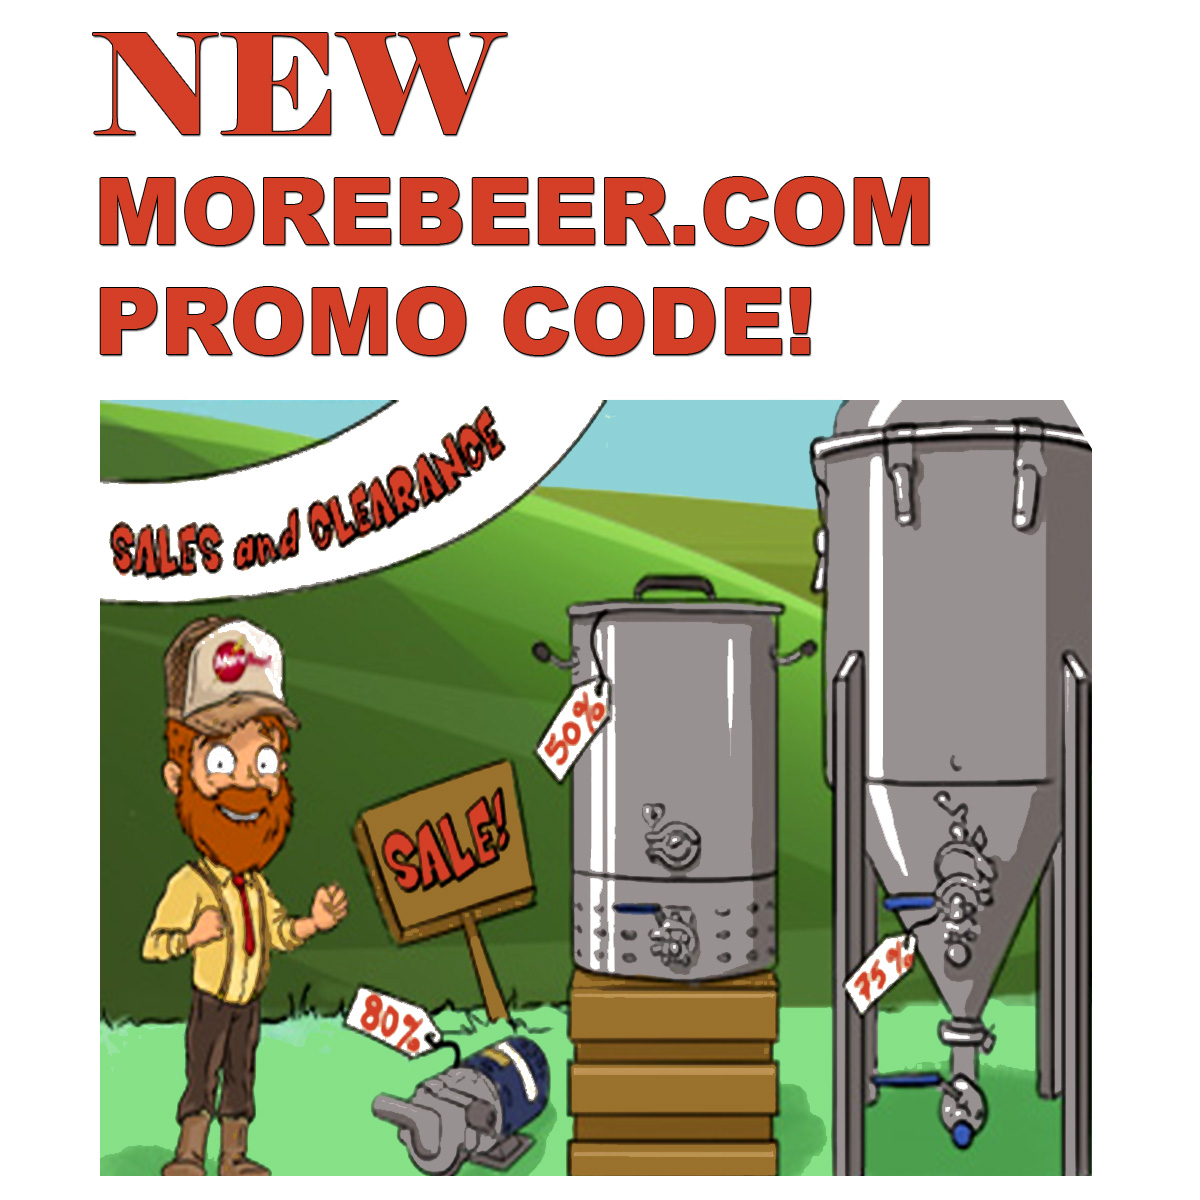 Home Wine Making Coupon Codes for Save Big During the MoreBeer.com Home Brewing Sale Going On Now at MoreBeer.com Coupon Code